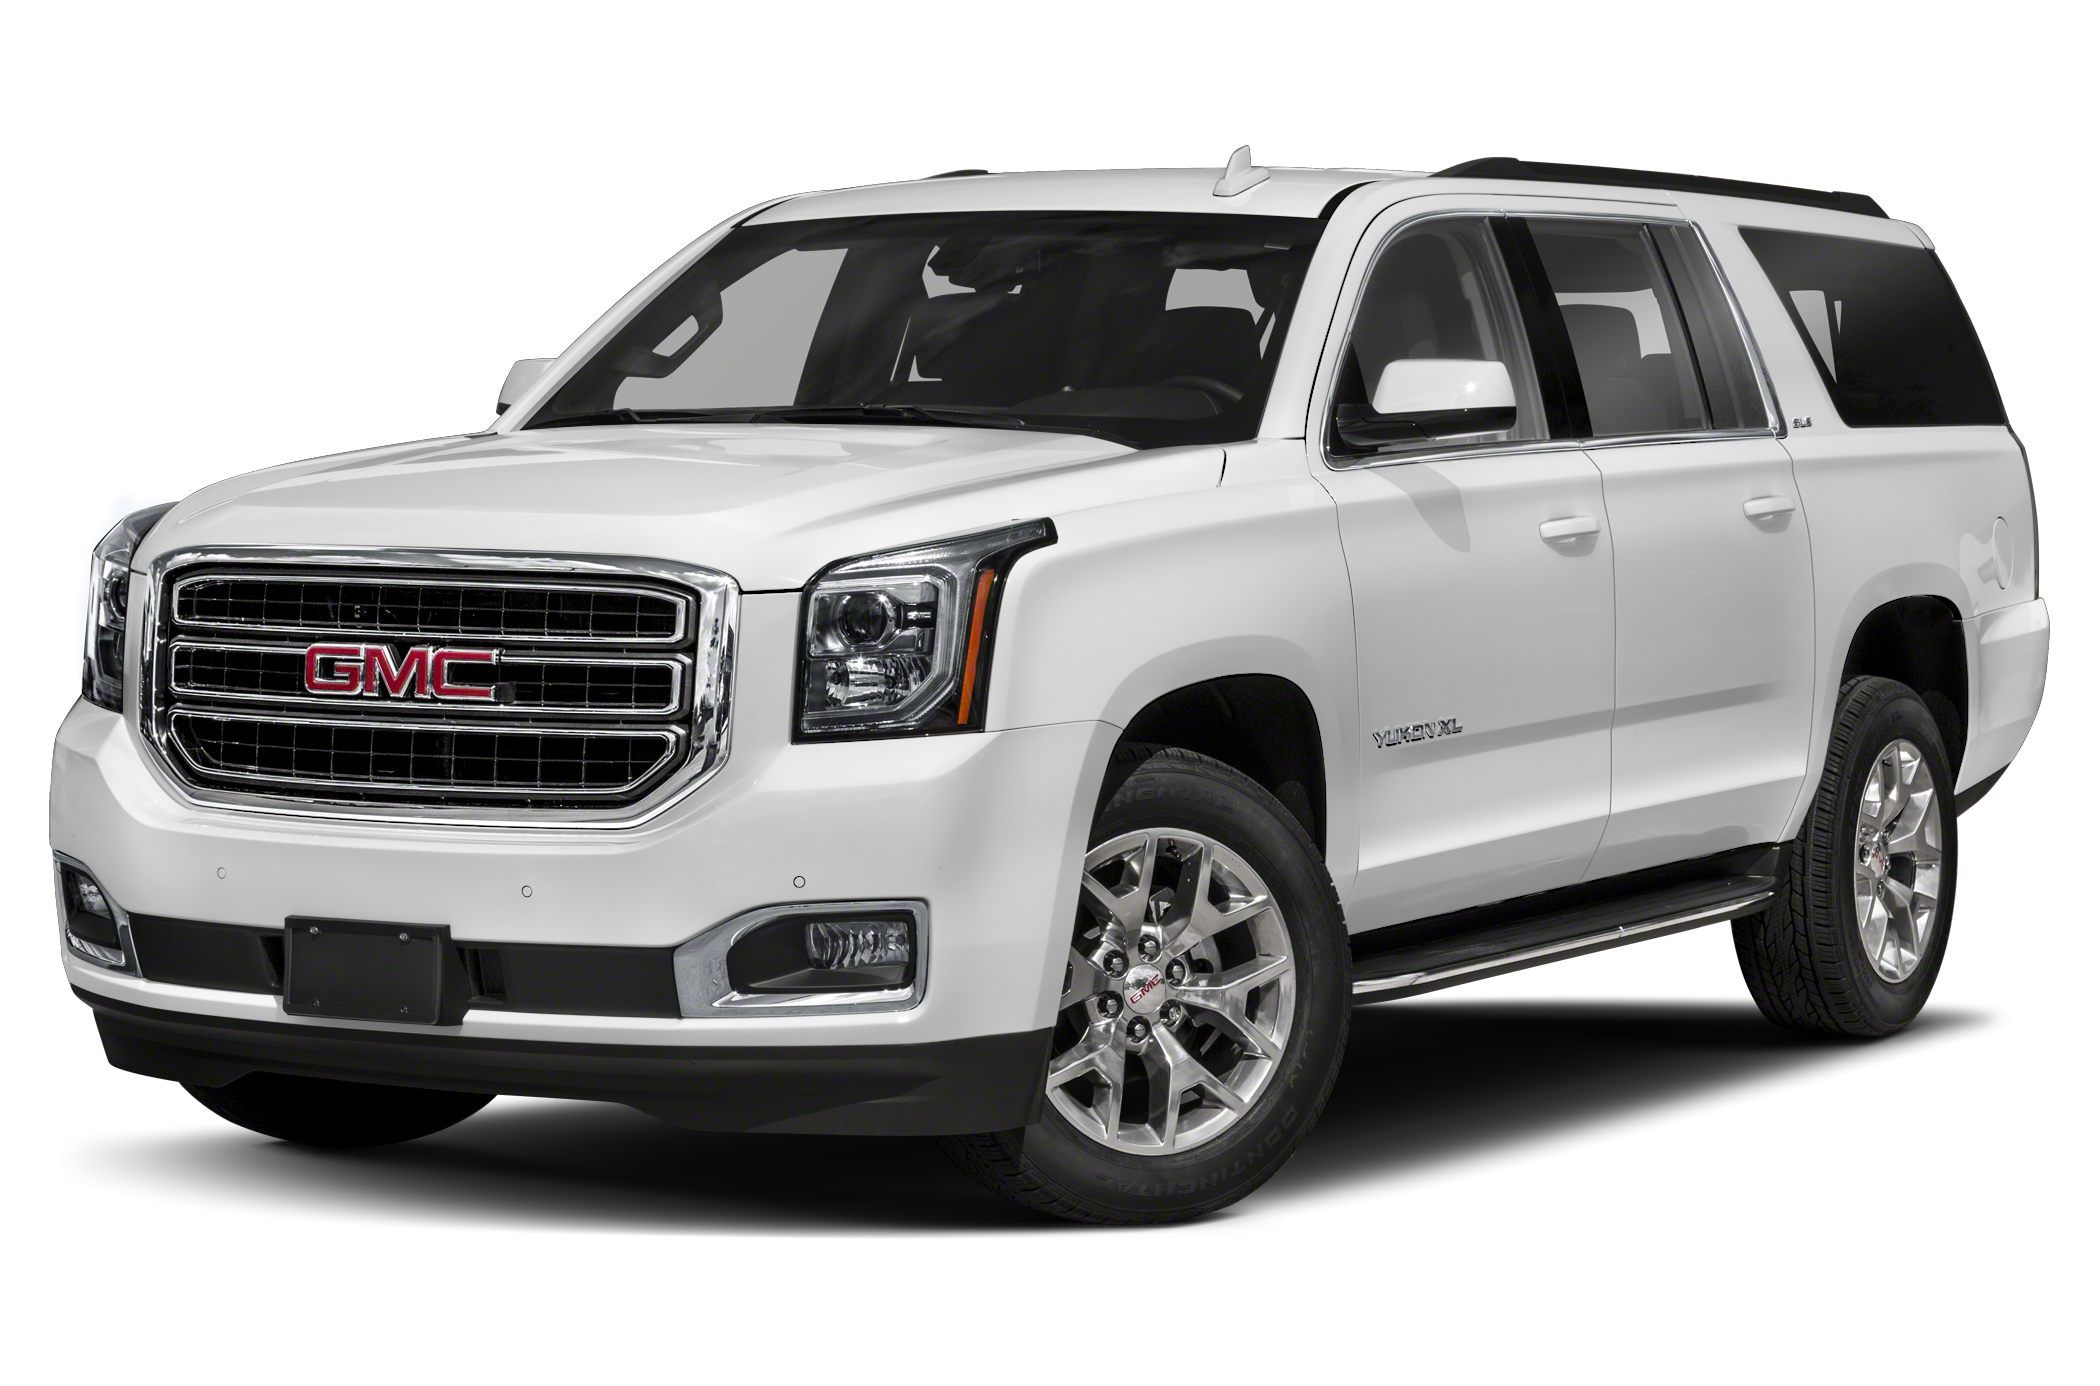 Awesome Review 2019 Gmc Yukon Xl Slt 4wd And Images And Review In 2020 Gmc Yukon Denali Yukon Denali Gmc Yukon Xl